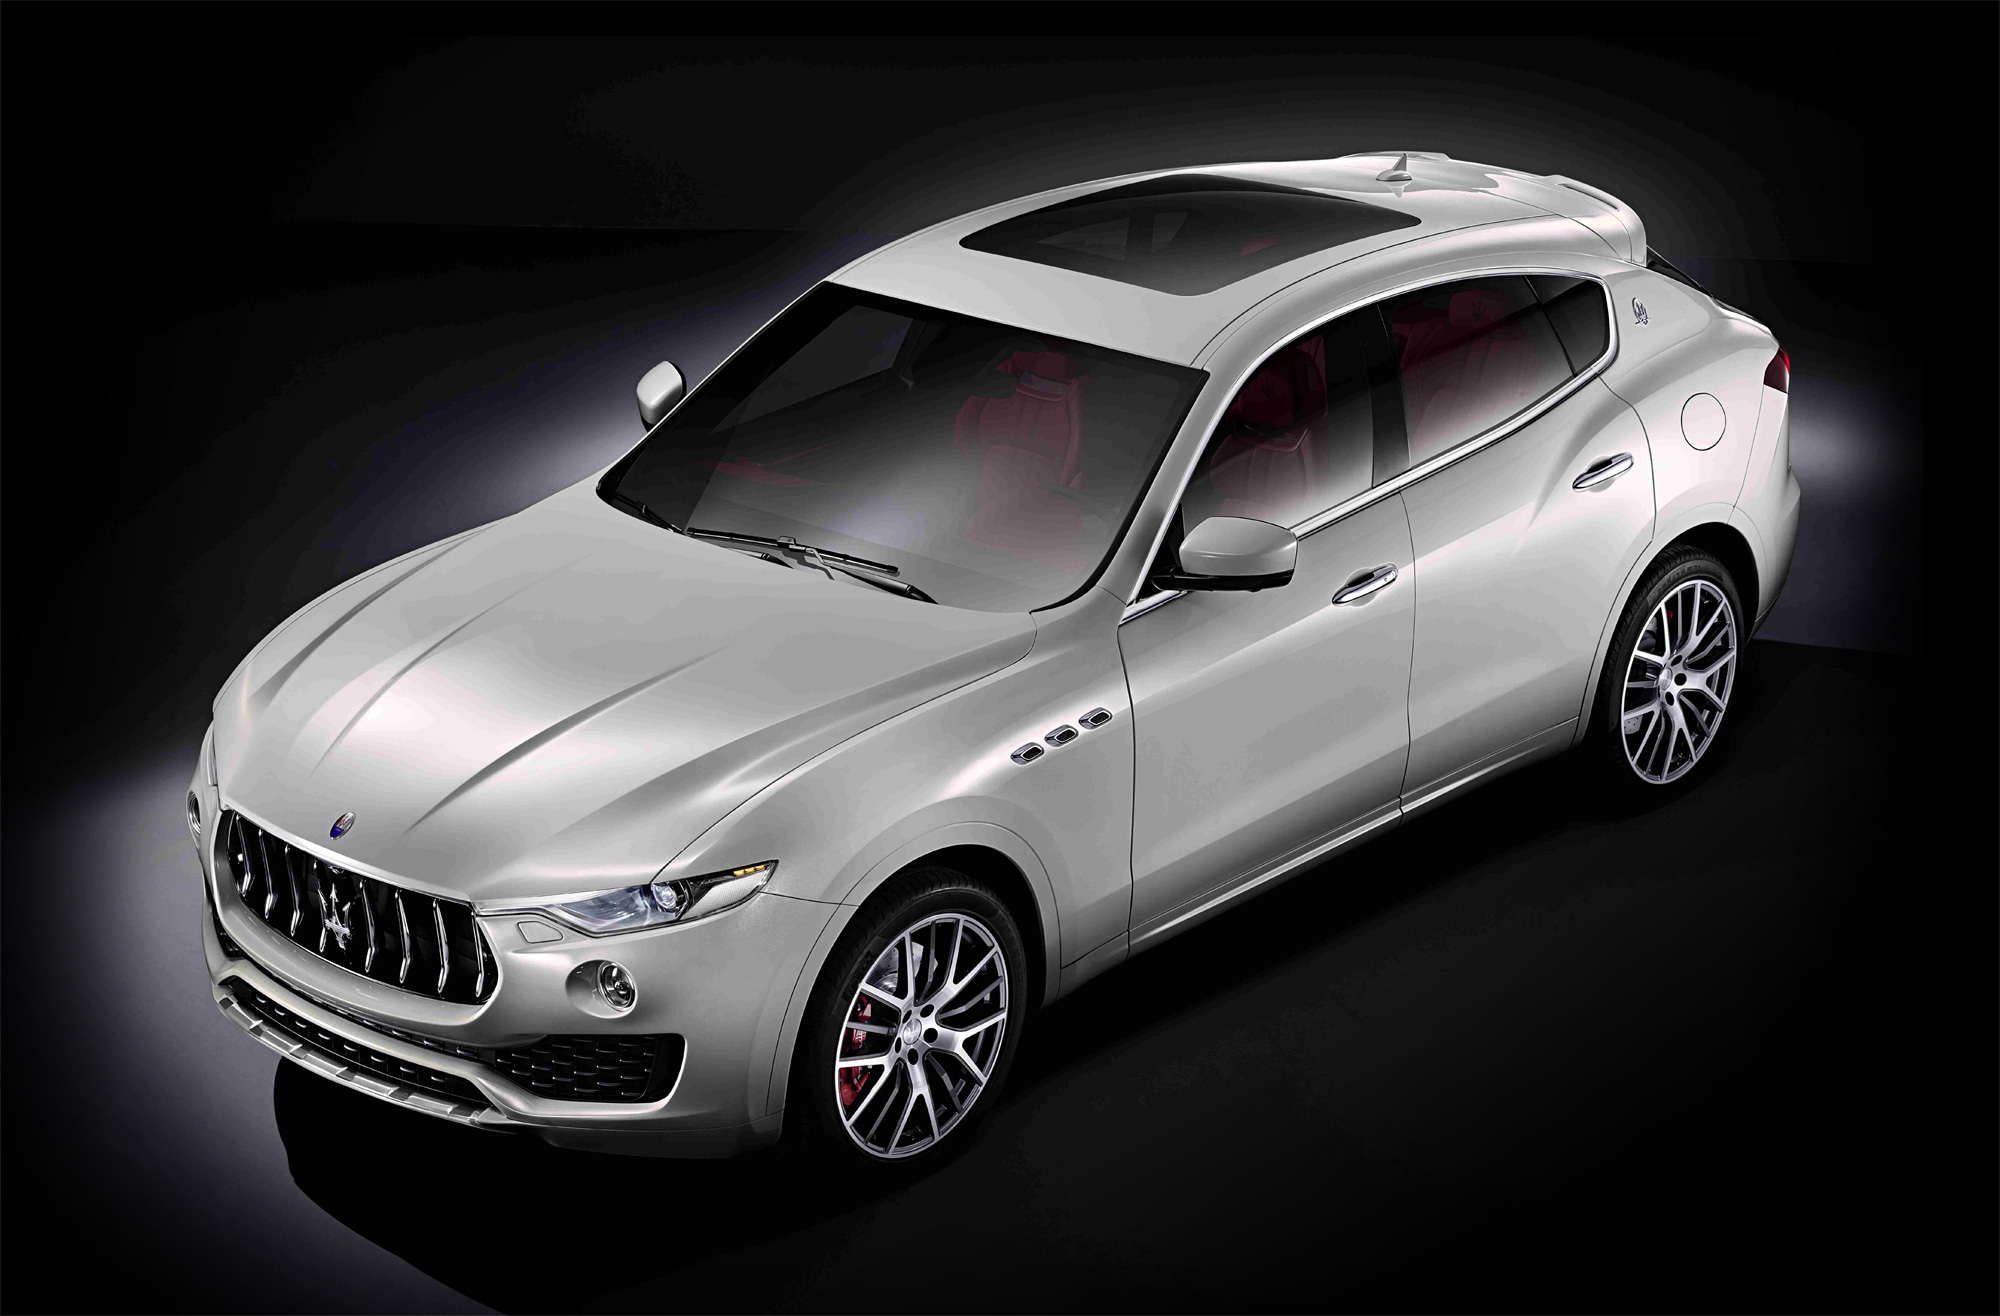 Maserati Raises Their Haunches With The Levante SUV